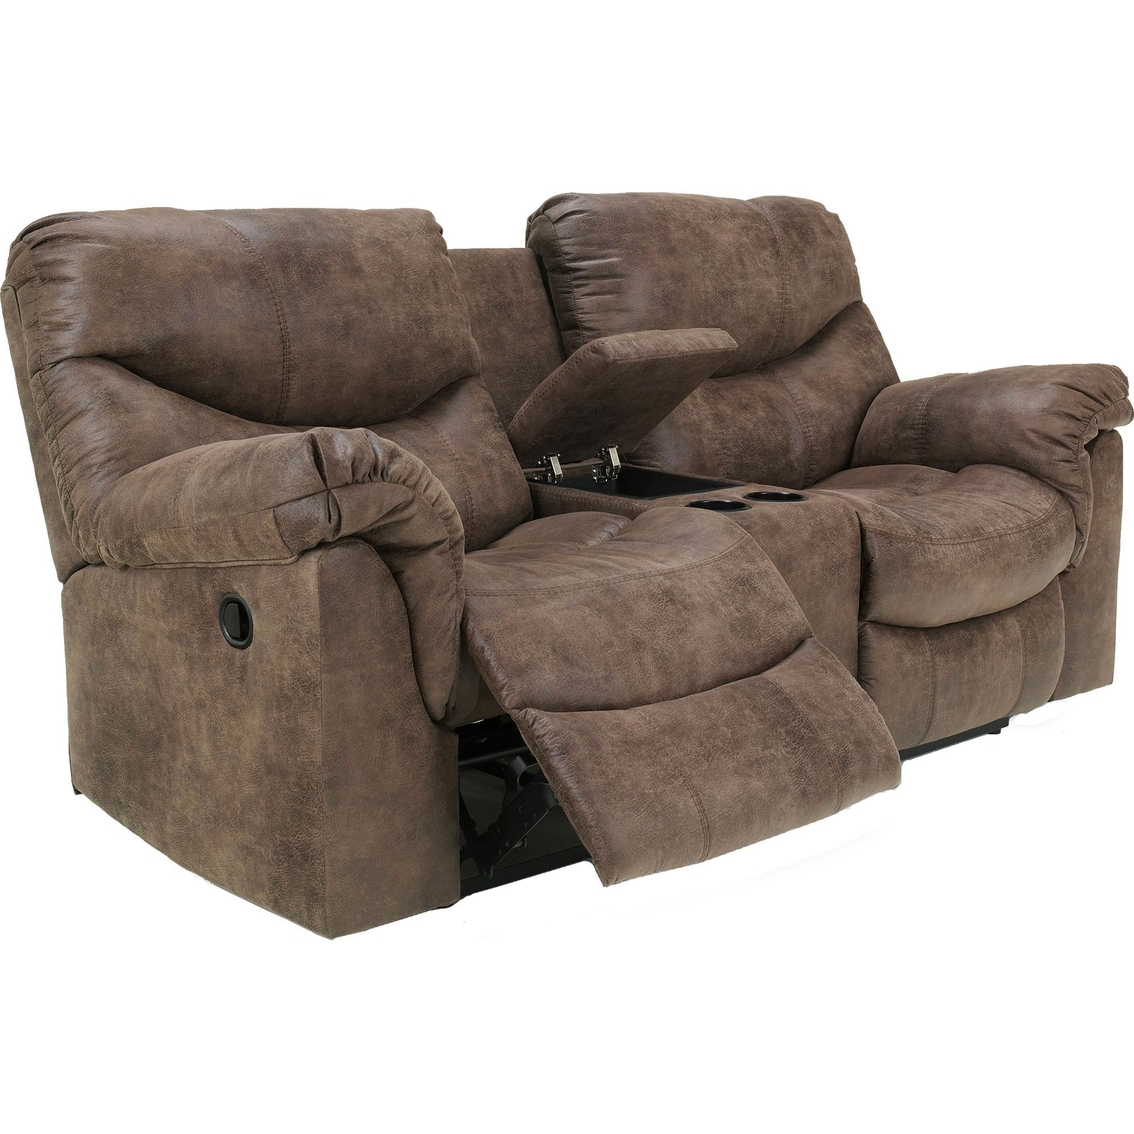 catnapper storage cn center p chestnut reclining loveseat and console ls wide extra with cupholders nolan leather